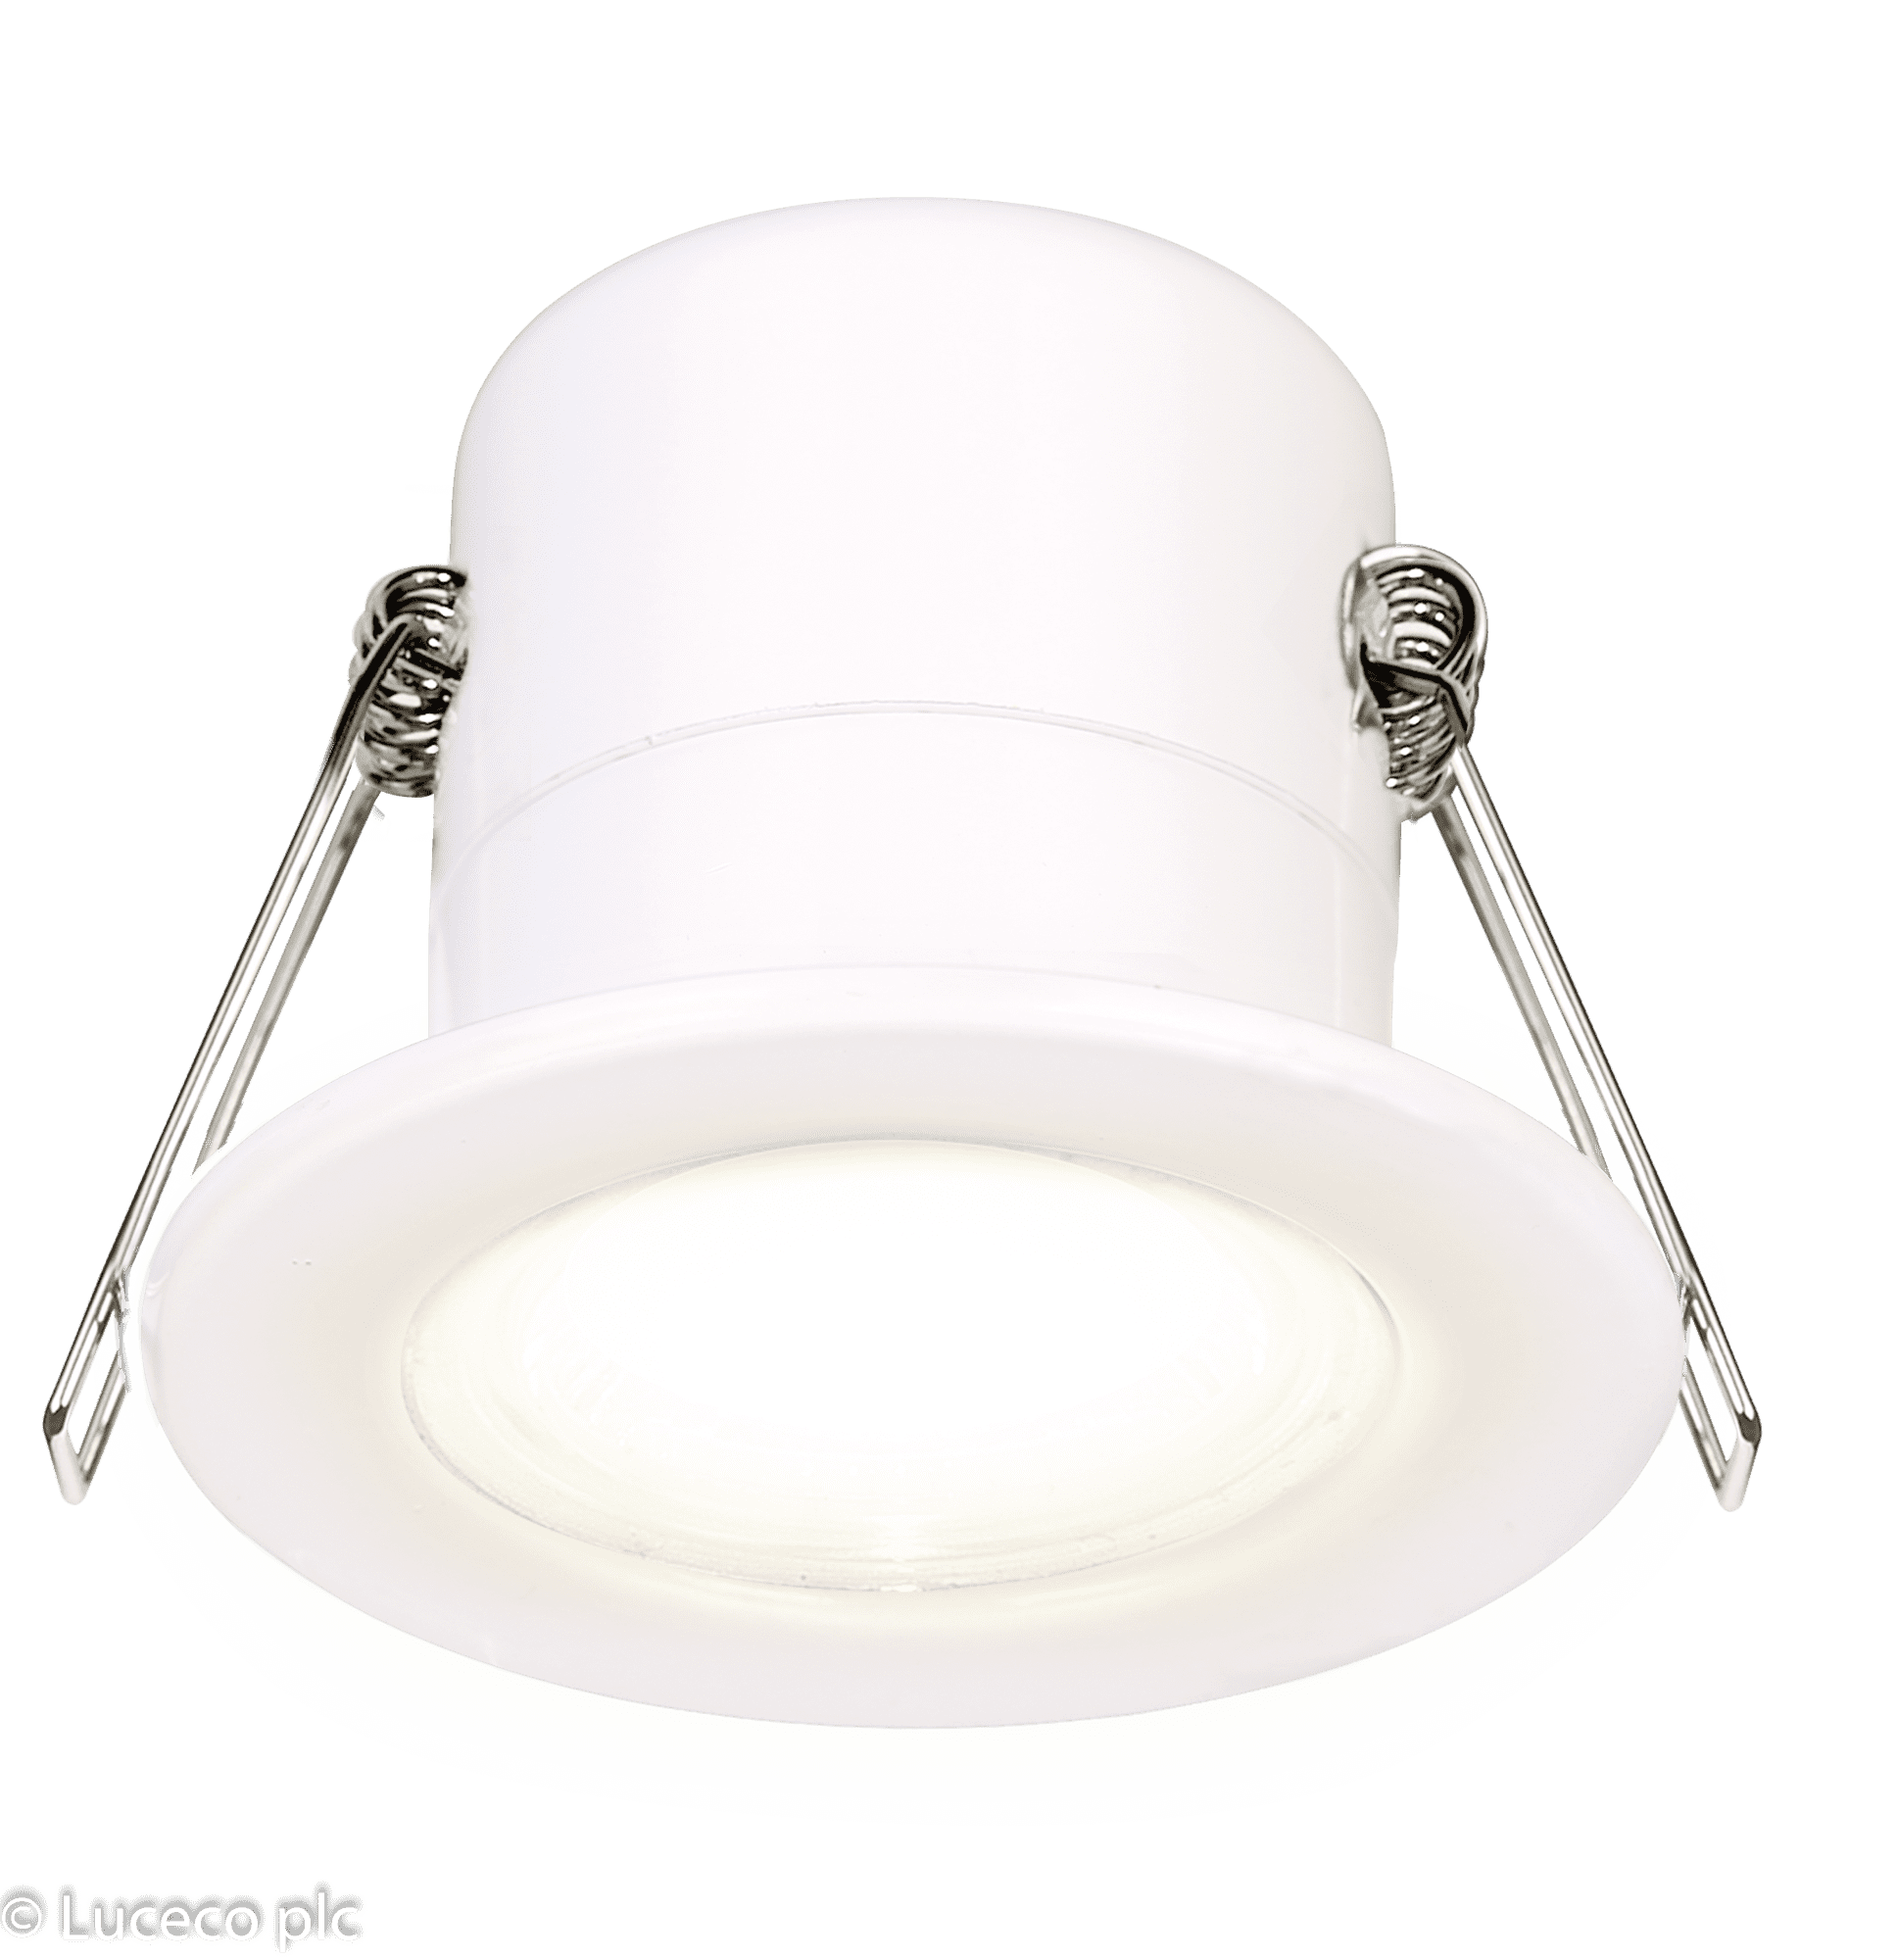 "Luceco LED Einbaustrahler  68er ECO ""F-Type"" 5W 3000K IP65 dimmbar weiß"